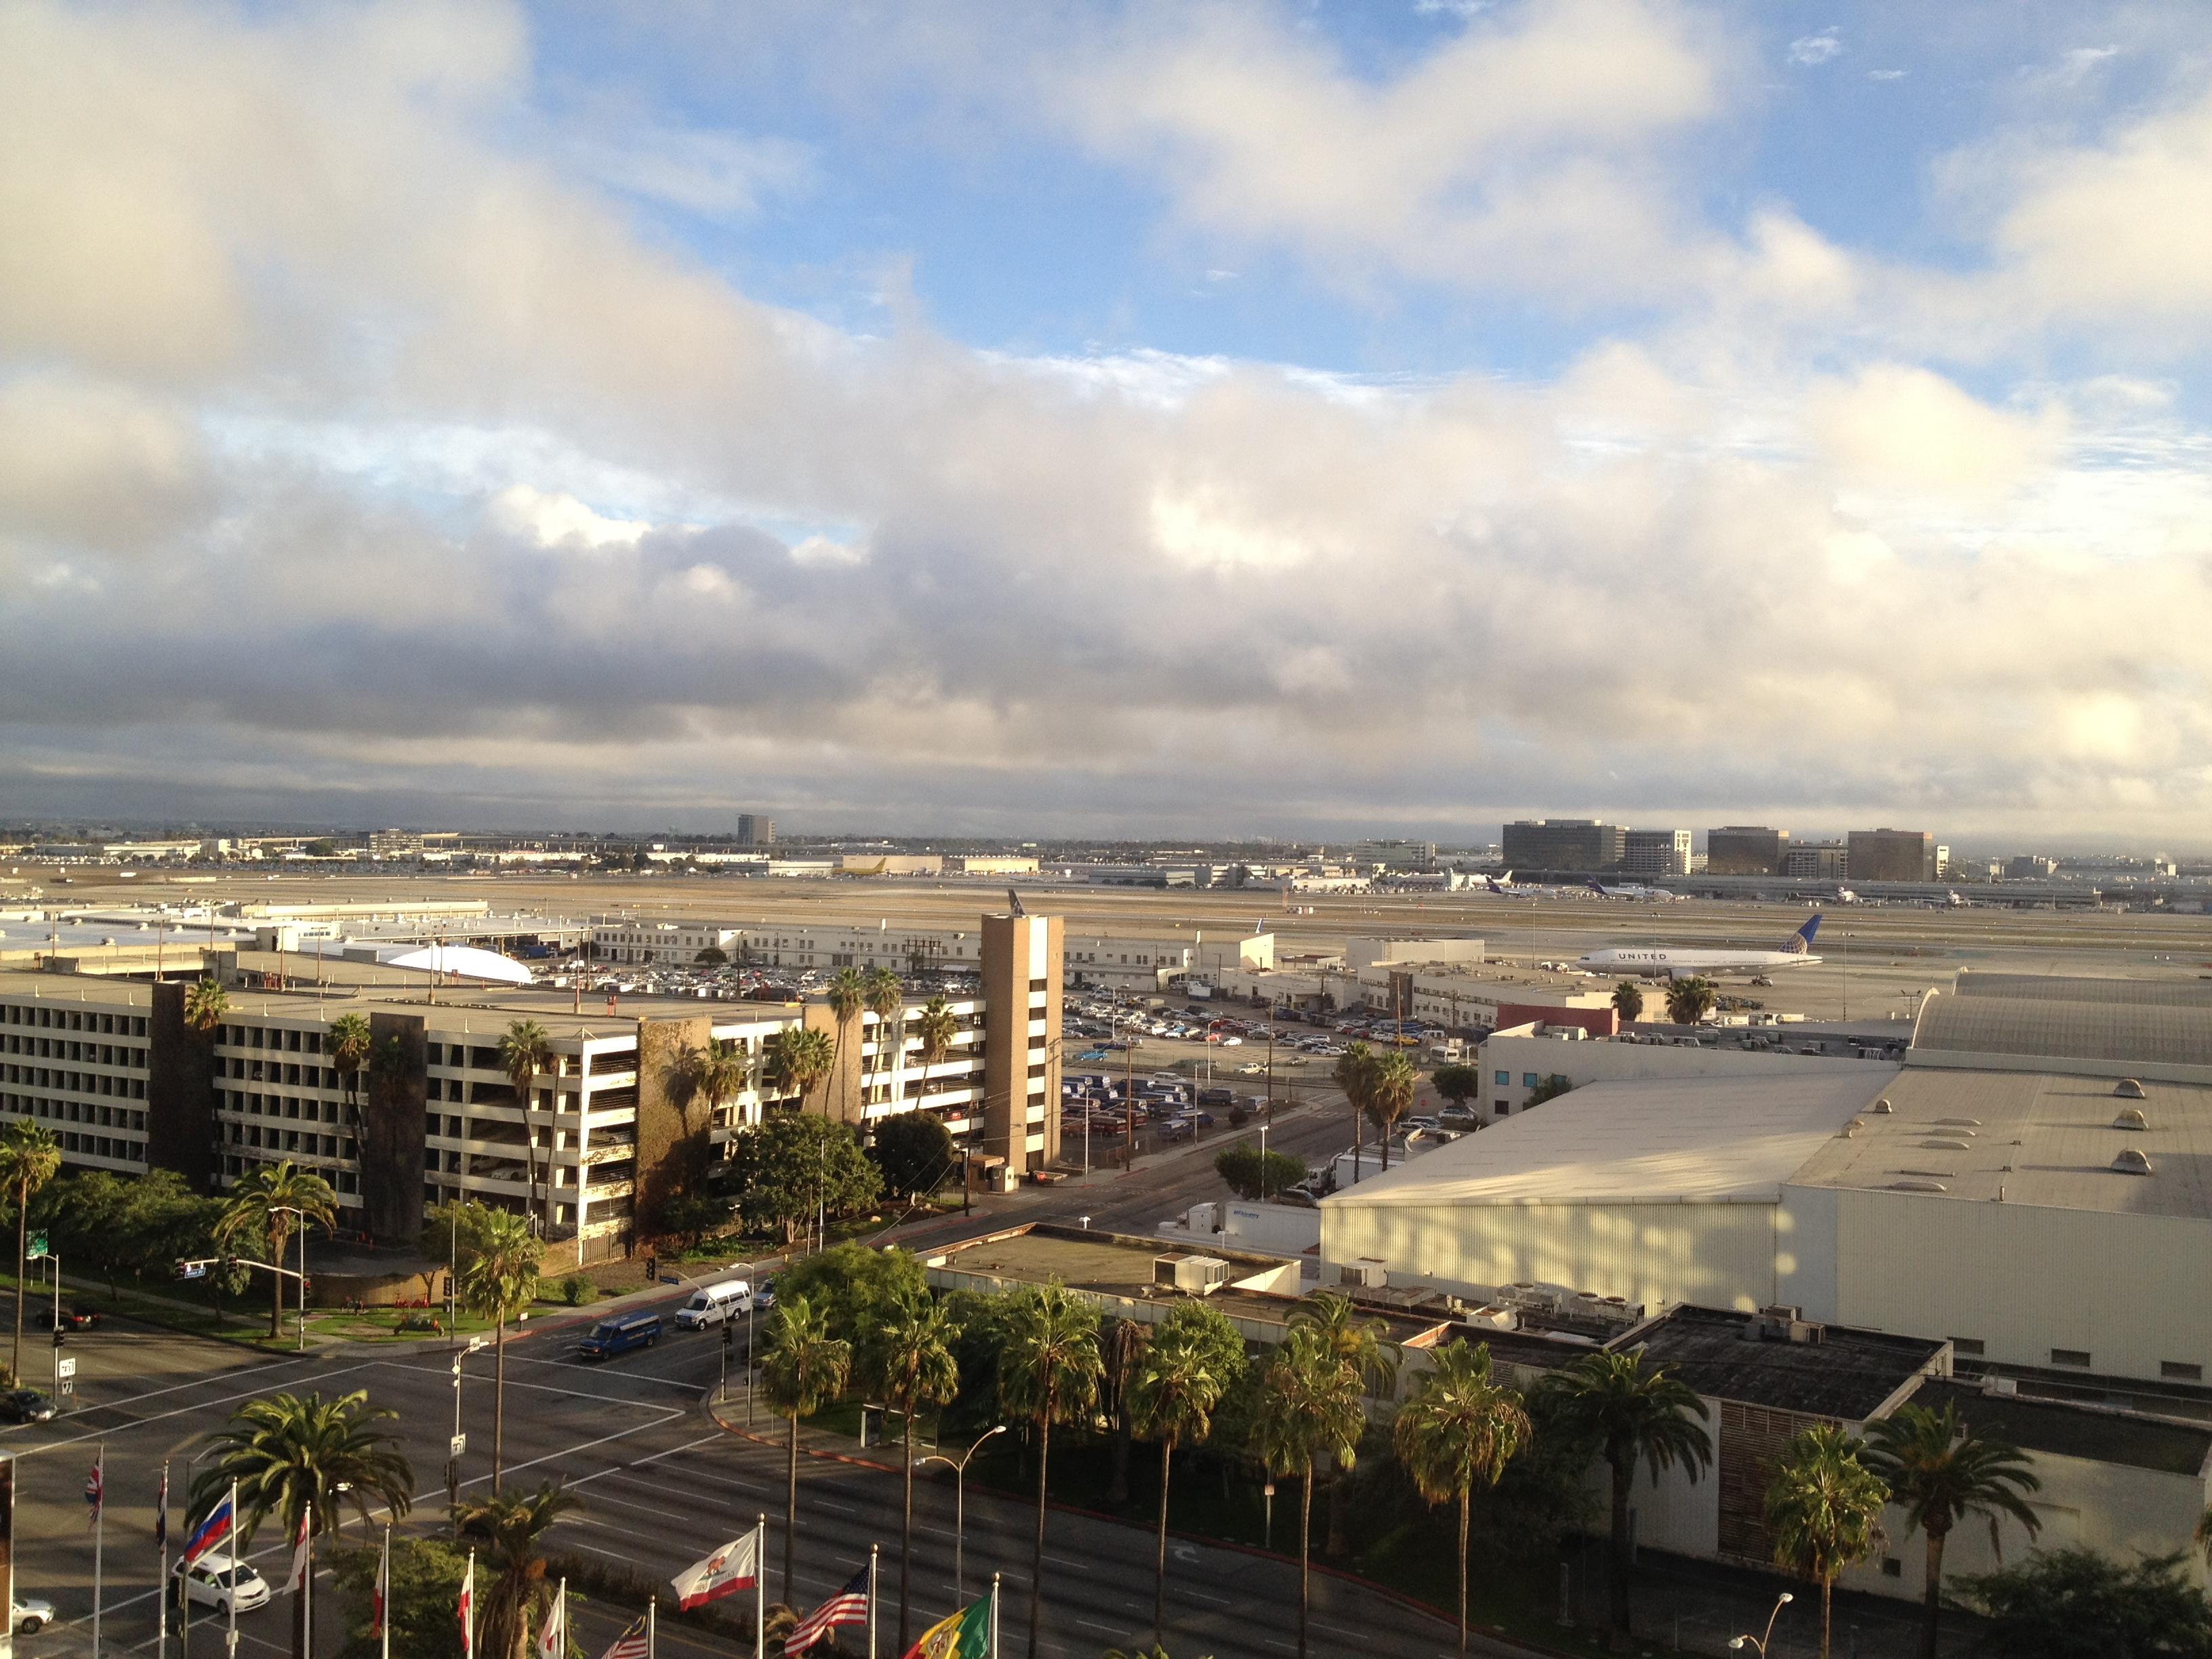 Gotta love that most rooms had a great view of the runway of one of the busiest airports in the world!